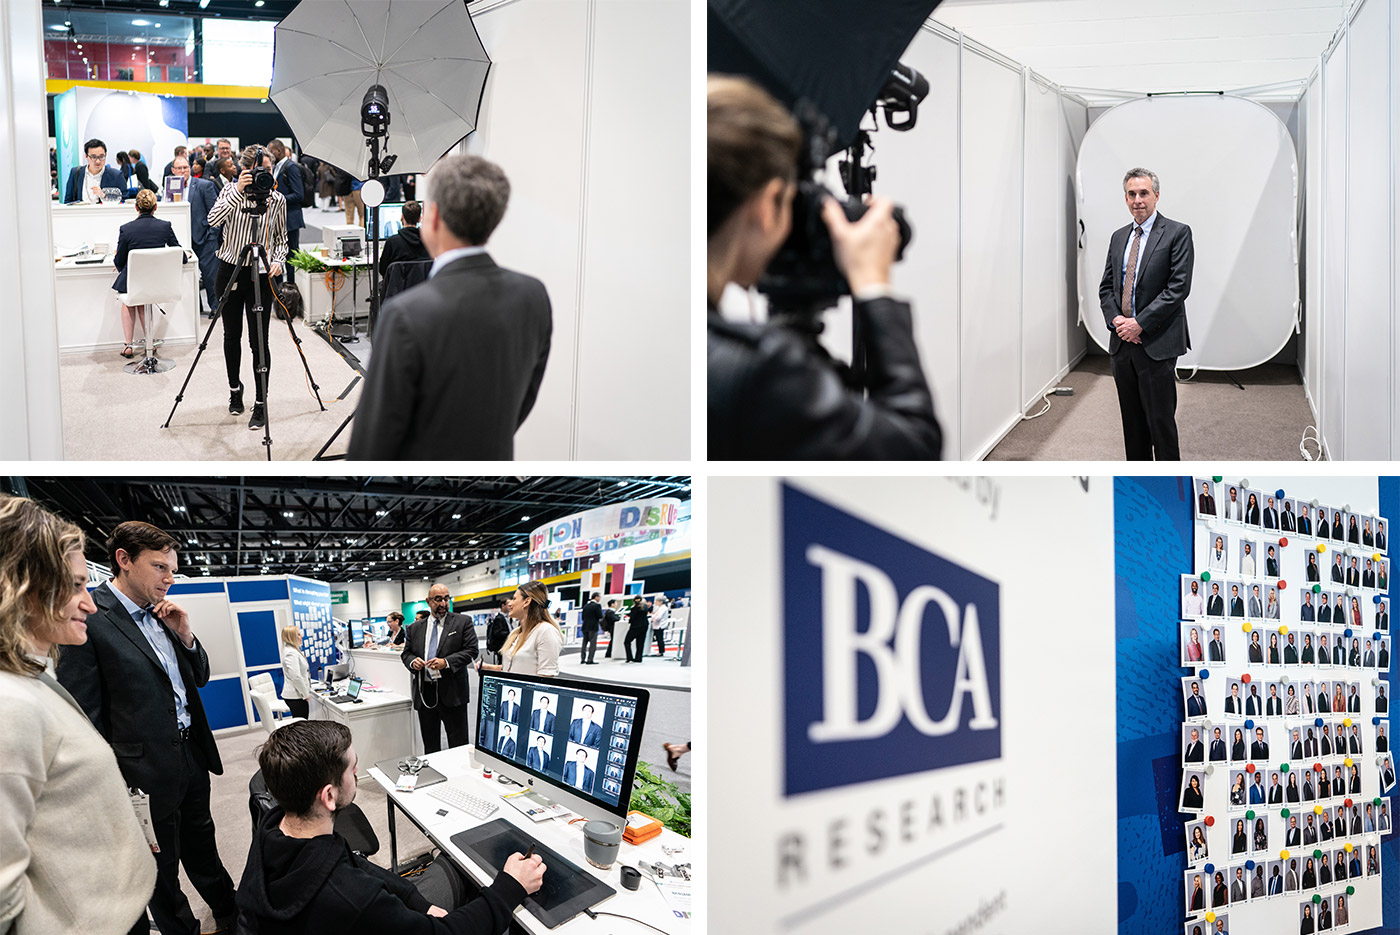 Free headshots for delegates of the CFA Annua Conference 2019 sponsored by BCA Research